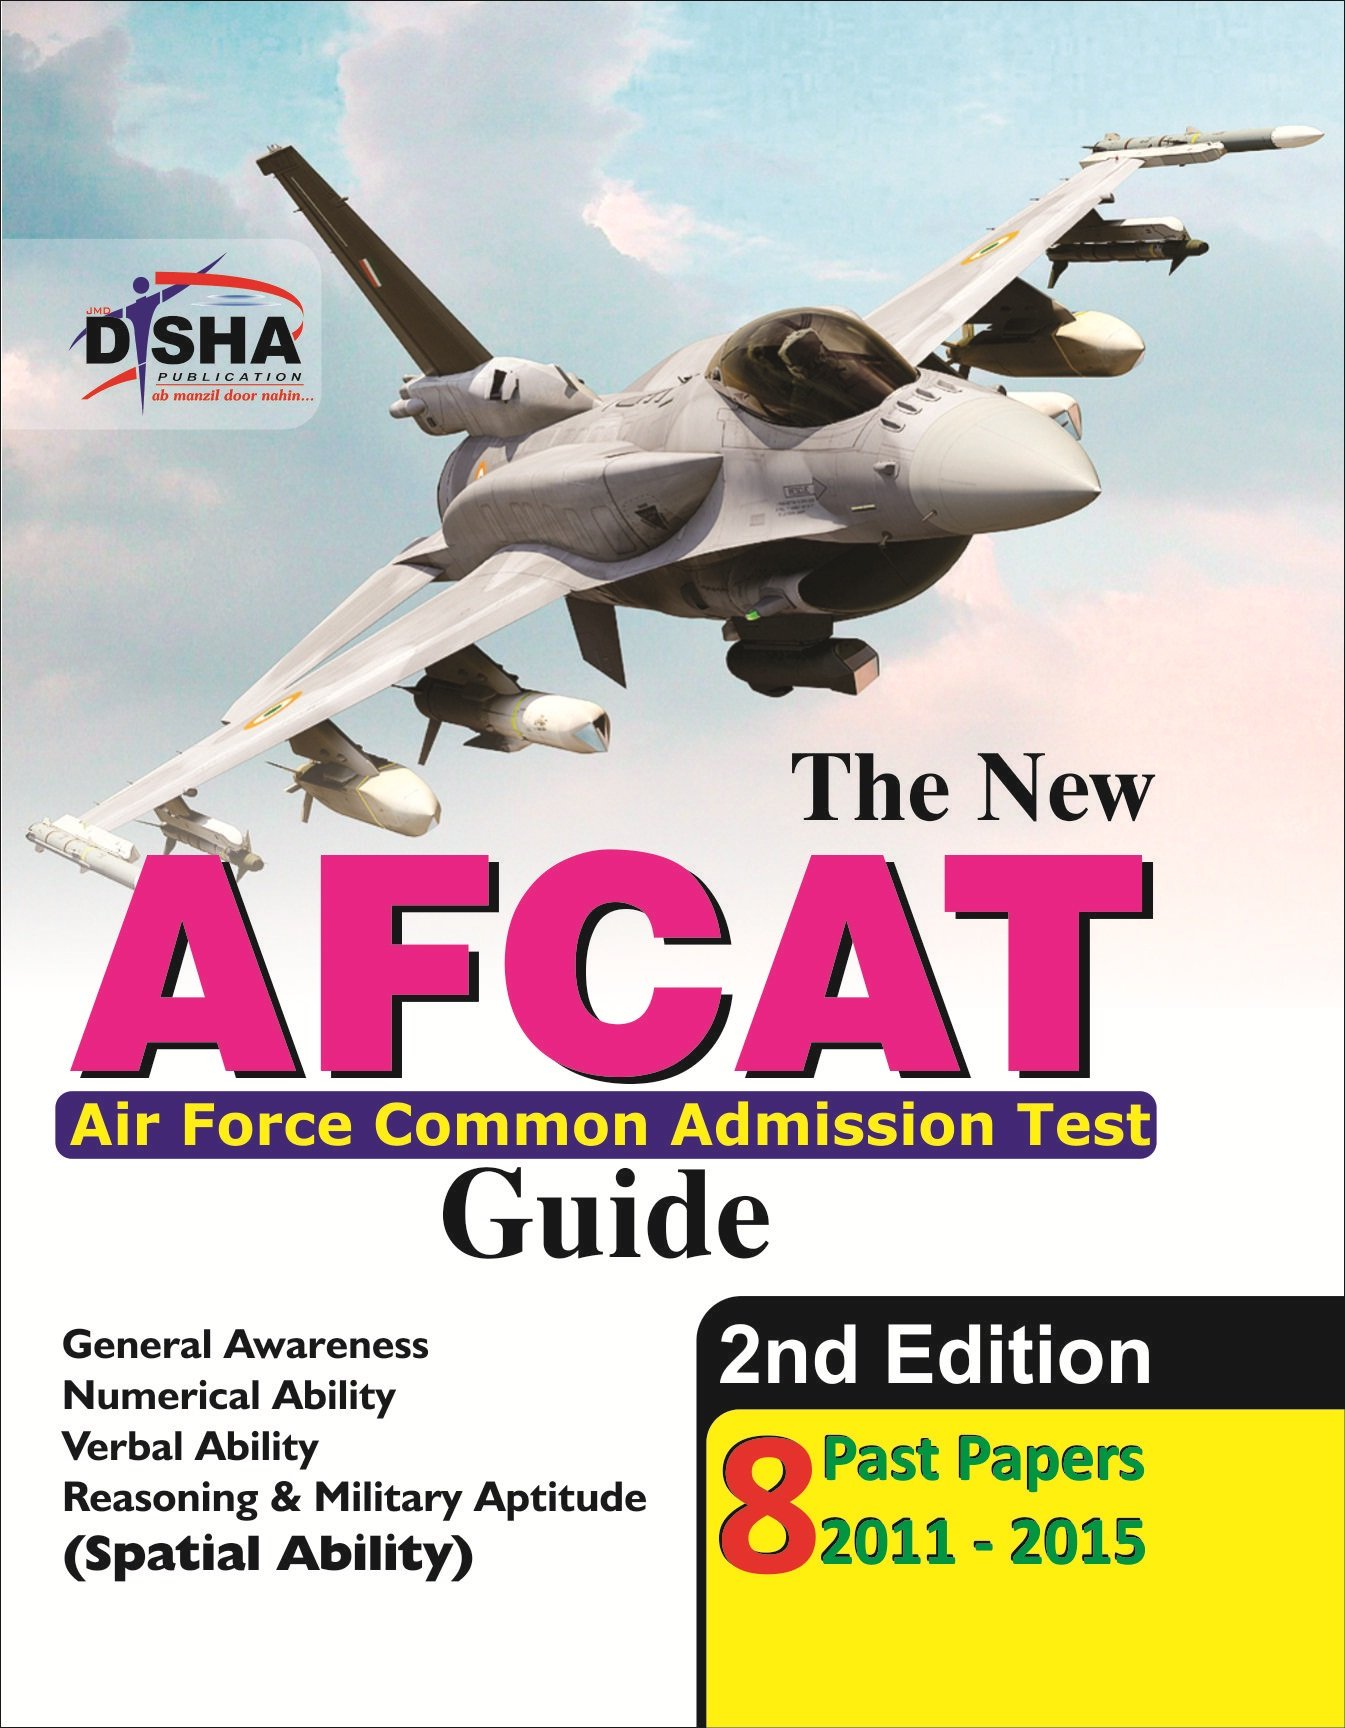 The New Afcat Guide With 8 Past Papers (2011 - 2015) (Old